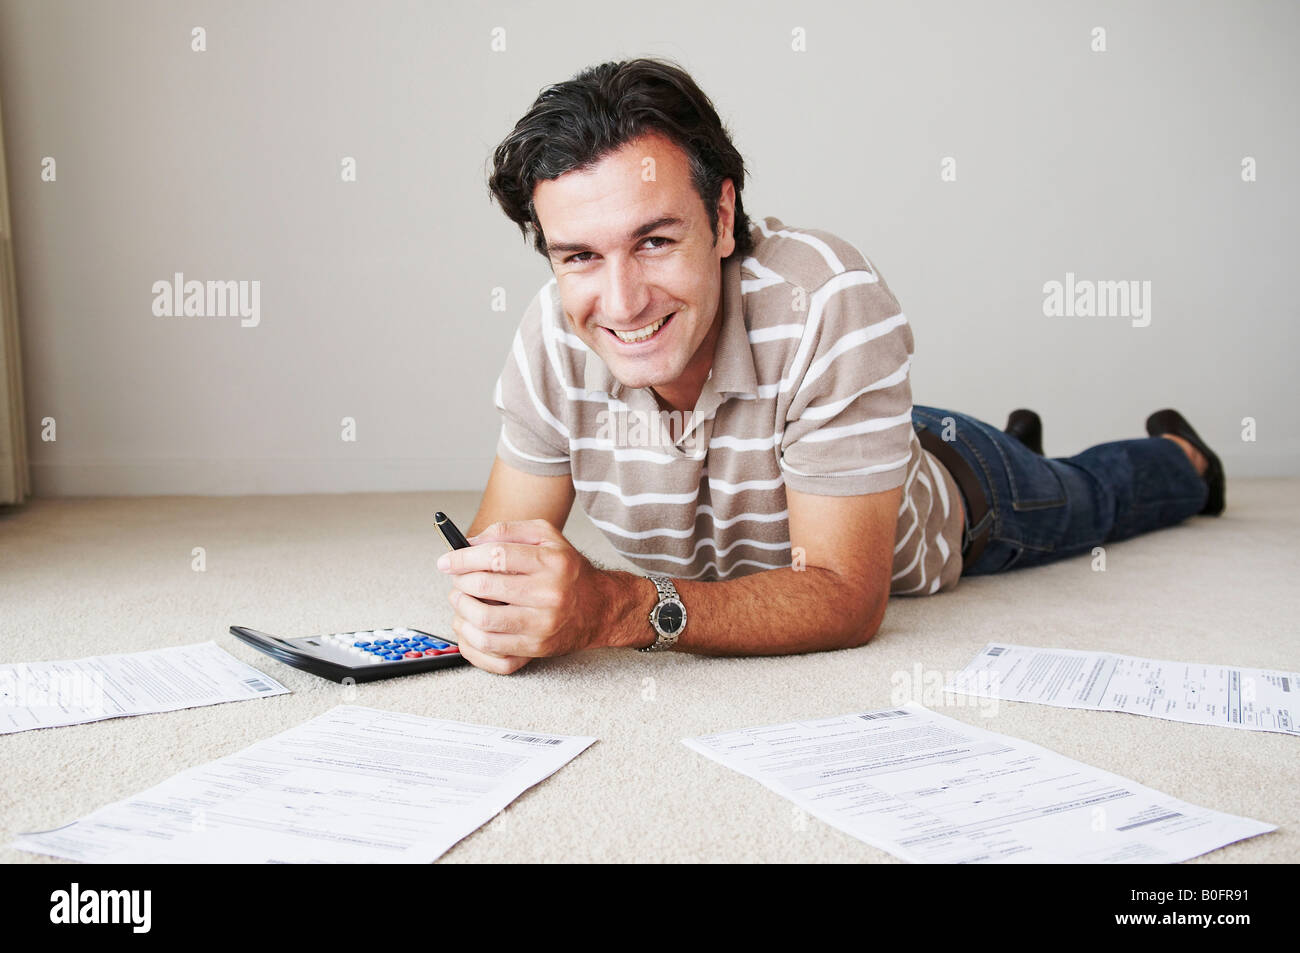 Man works on home finance - Stock Image